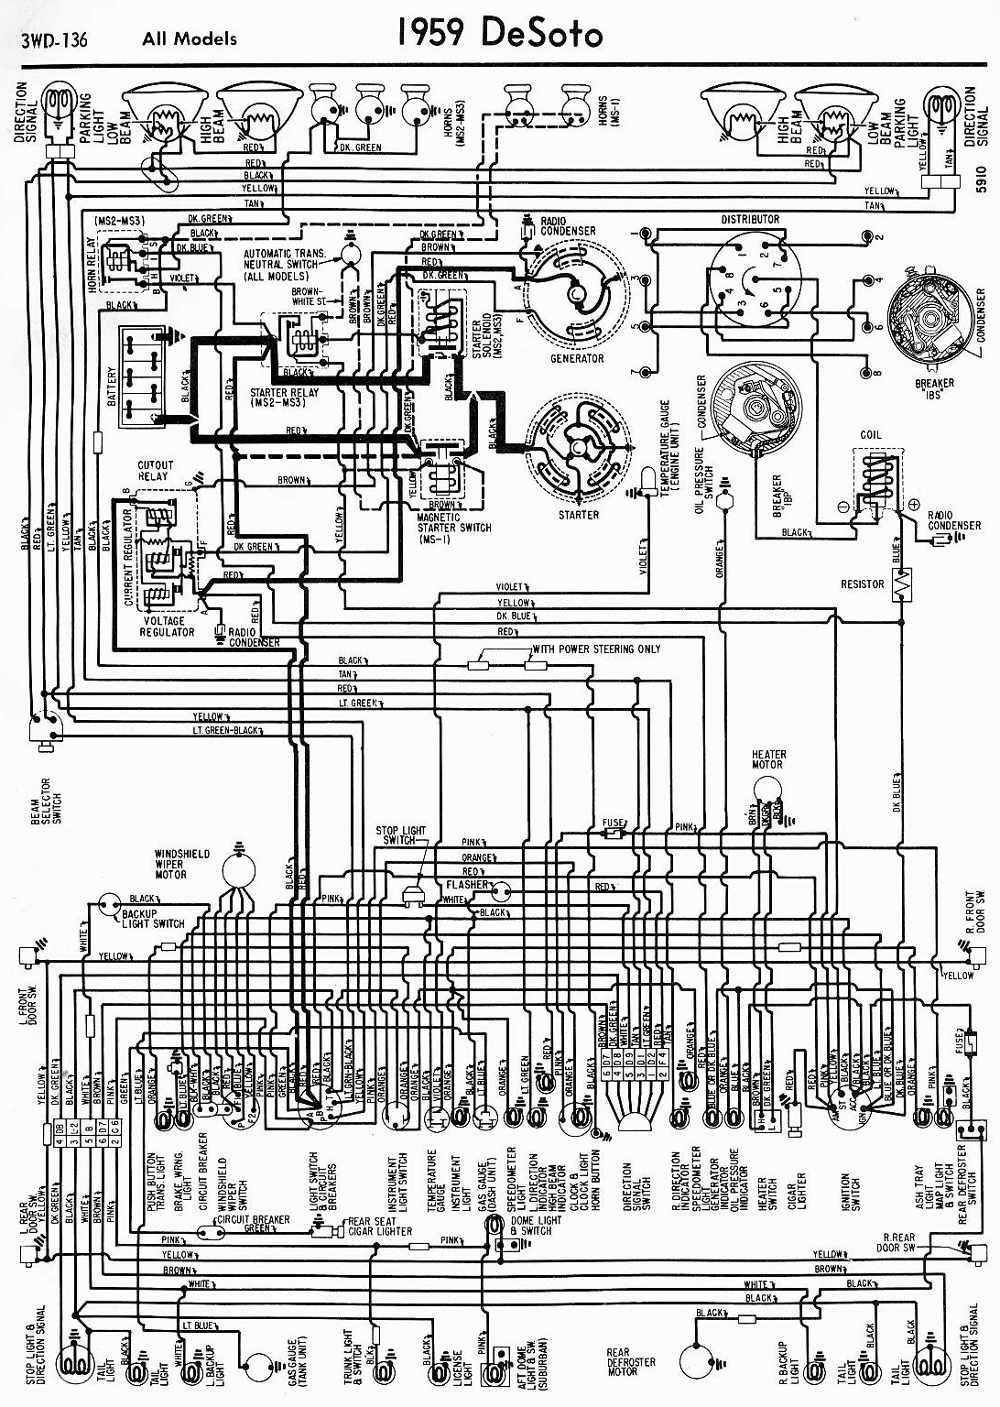 De Soto Car Manuals Wiring Diagrams Pdf Fault Codes 1953 Lincoln Diagram Download